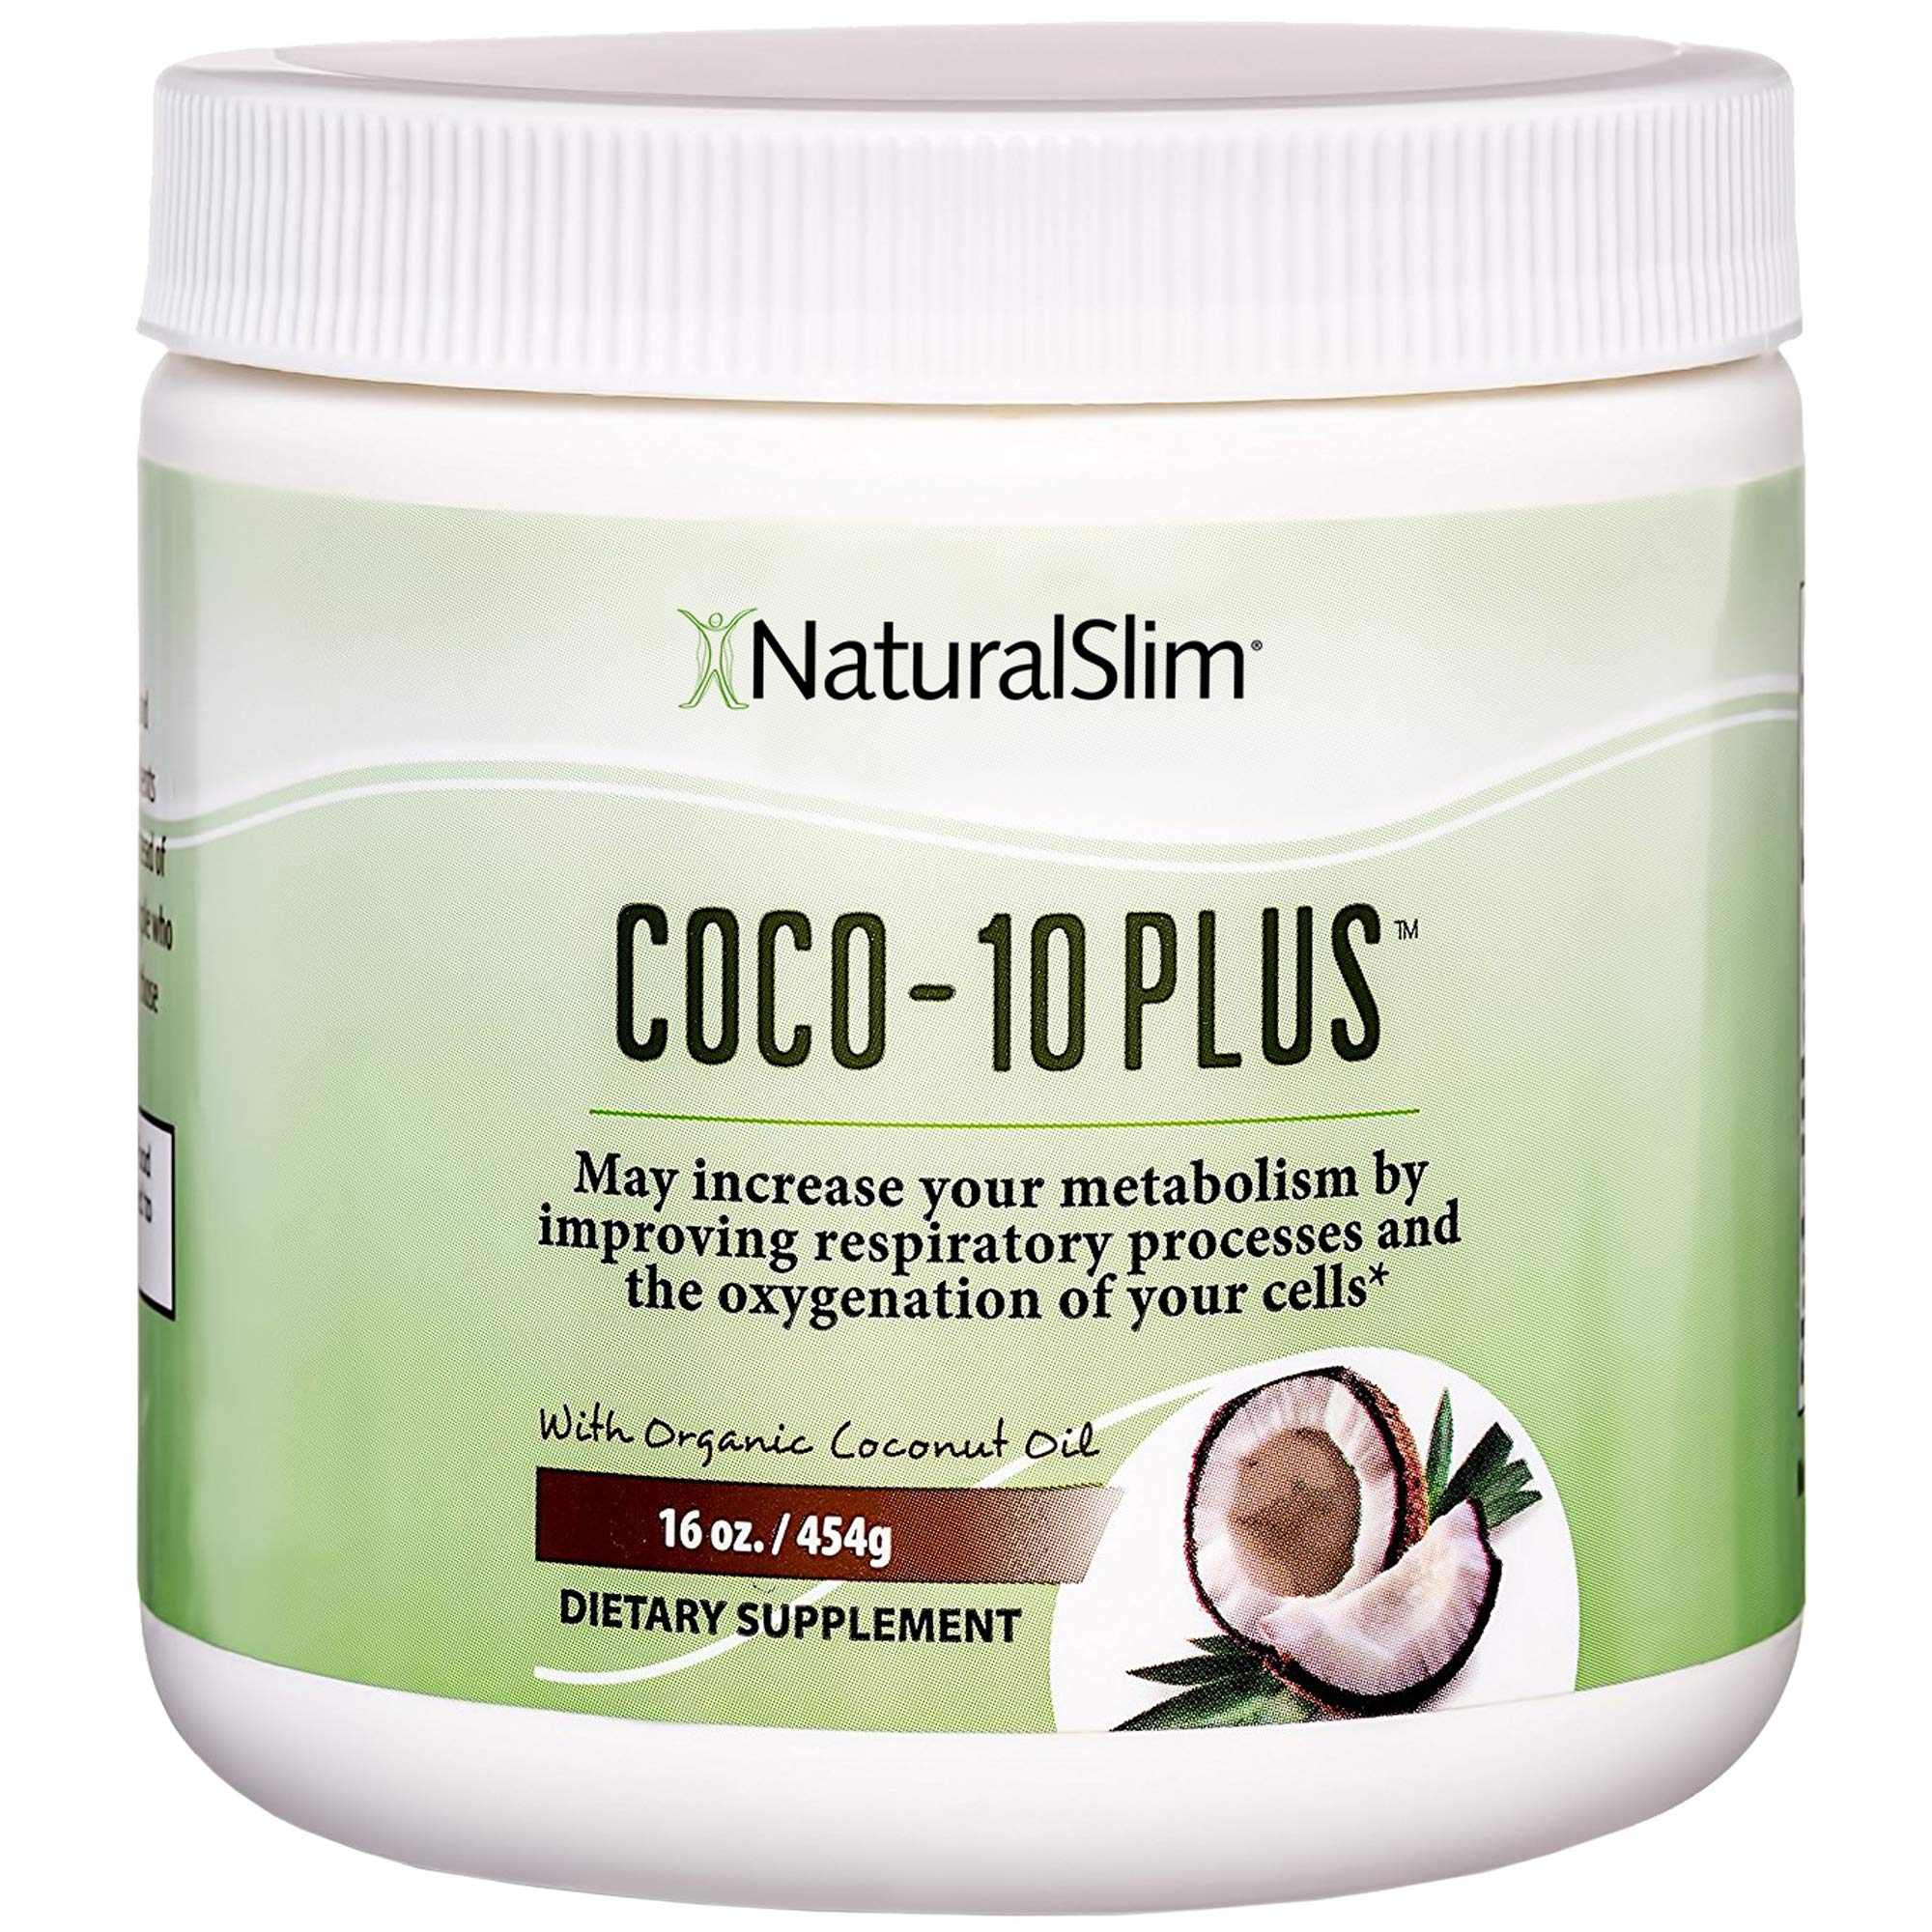 NaturalSlim''Super'' Organic Coconut Oil with CoQ10, Formulated by Obesity and Metabolism Specialist to Improve Energy Levels and Assist with Weight Loss - Natural Fat Burner to Any Diet Attempt 16 Oz